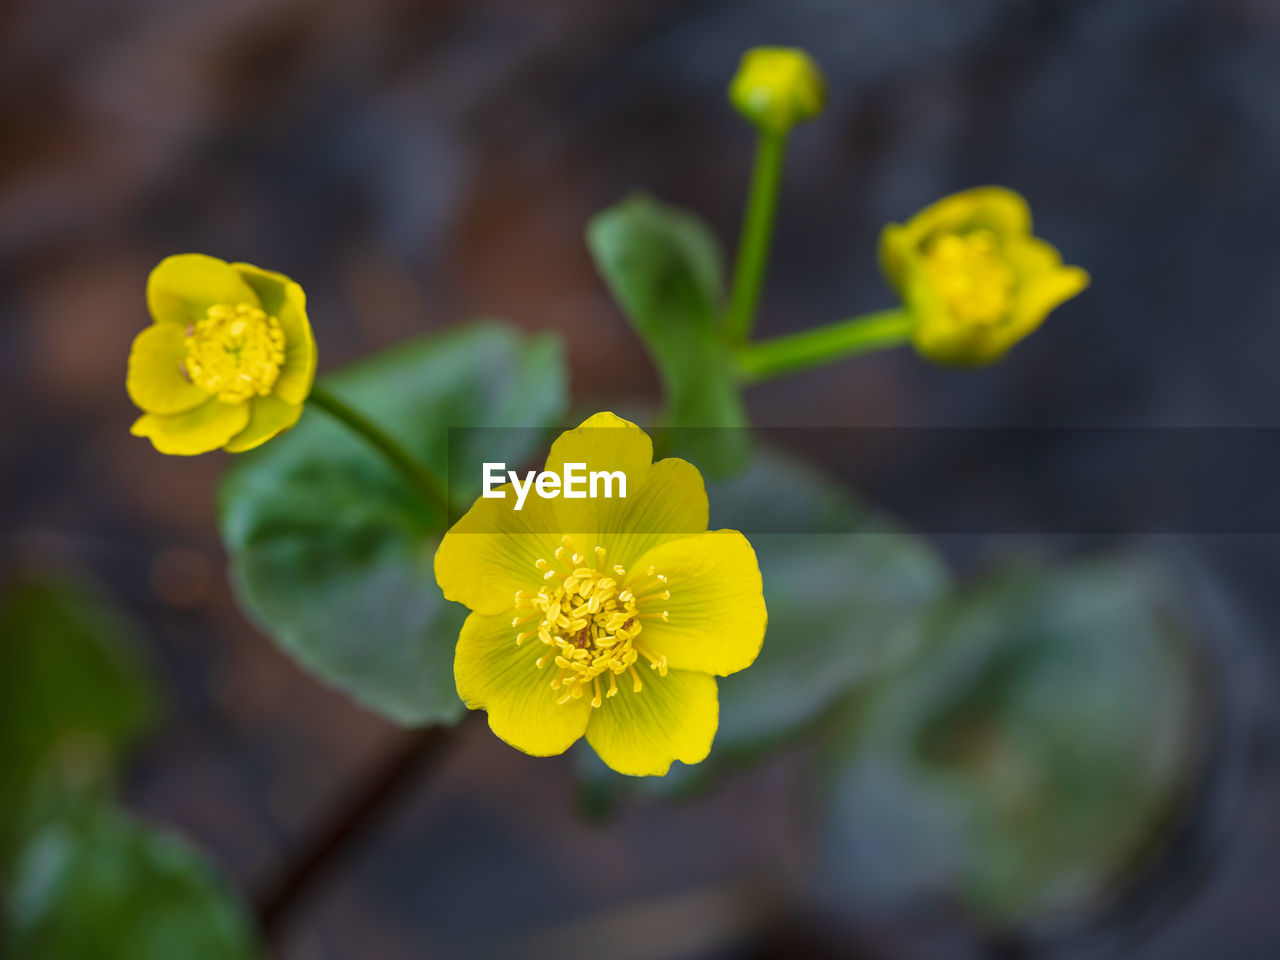 flowering plant, flower, yellow, fragility, vulnerability, freshness, growth, beauty in nature, plant, inflorescence, petal, flower head, close-up, focus on foreground, nature, day, no people, selective focus, outdoors, directly above